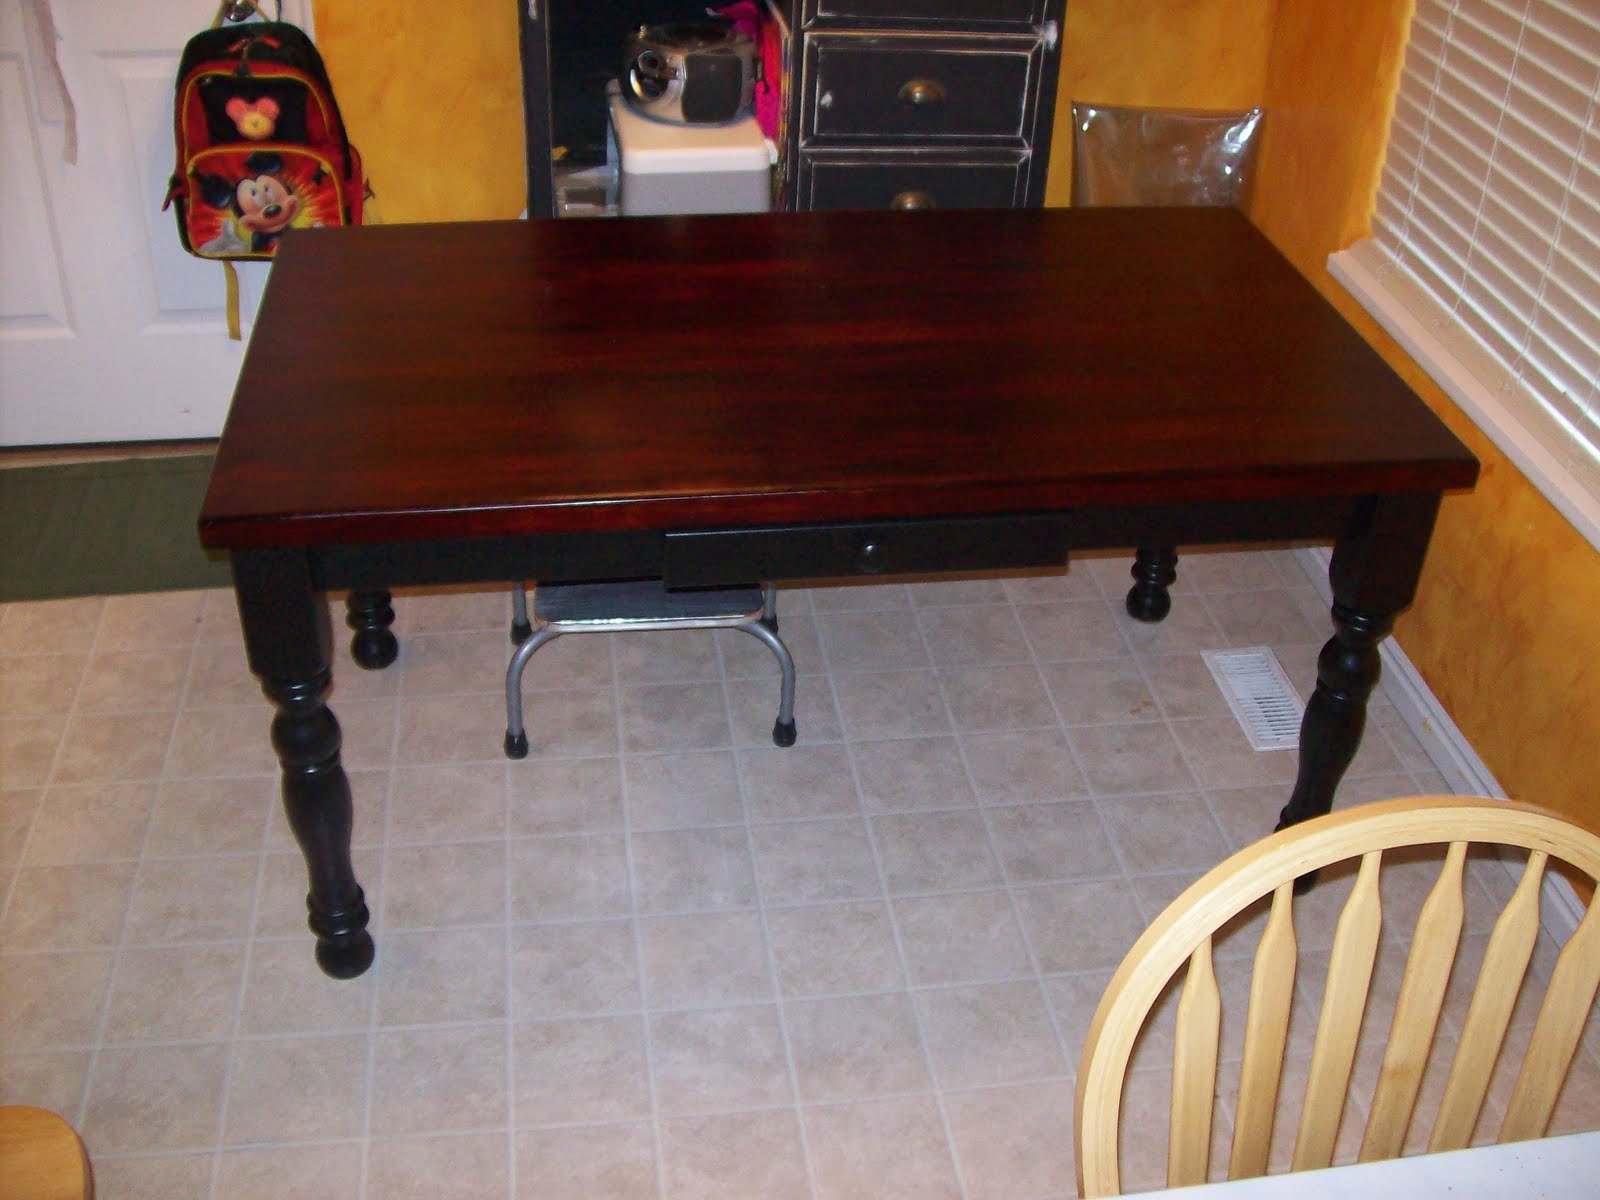 How to refinishing a kitchen table kitchen design photos - Refinishing a kitchen table ...